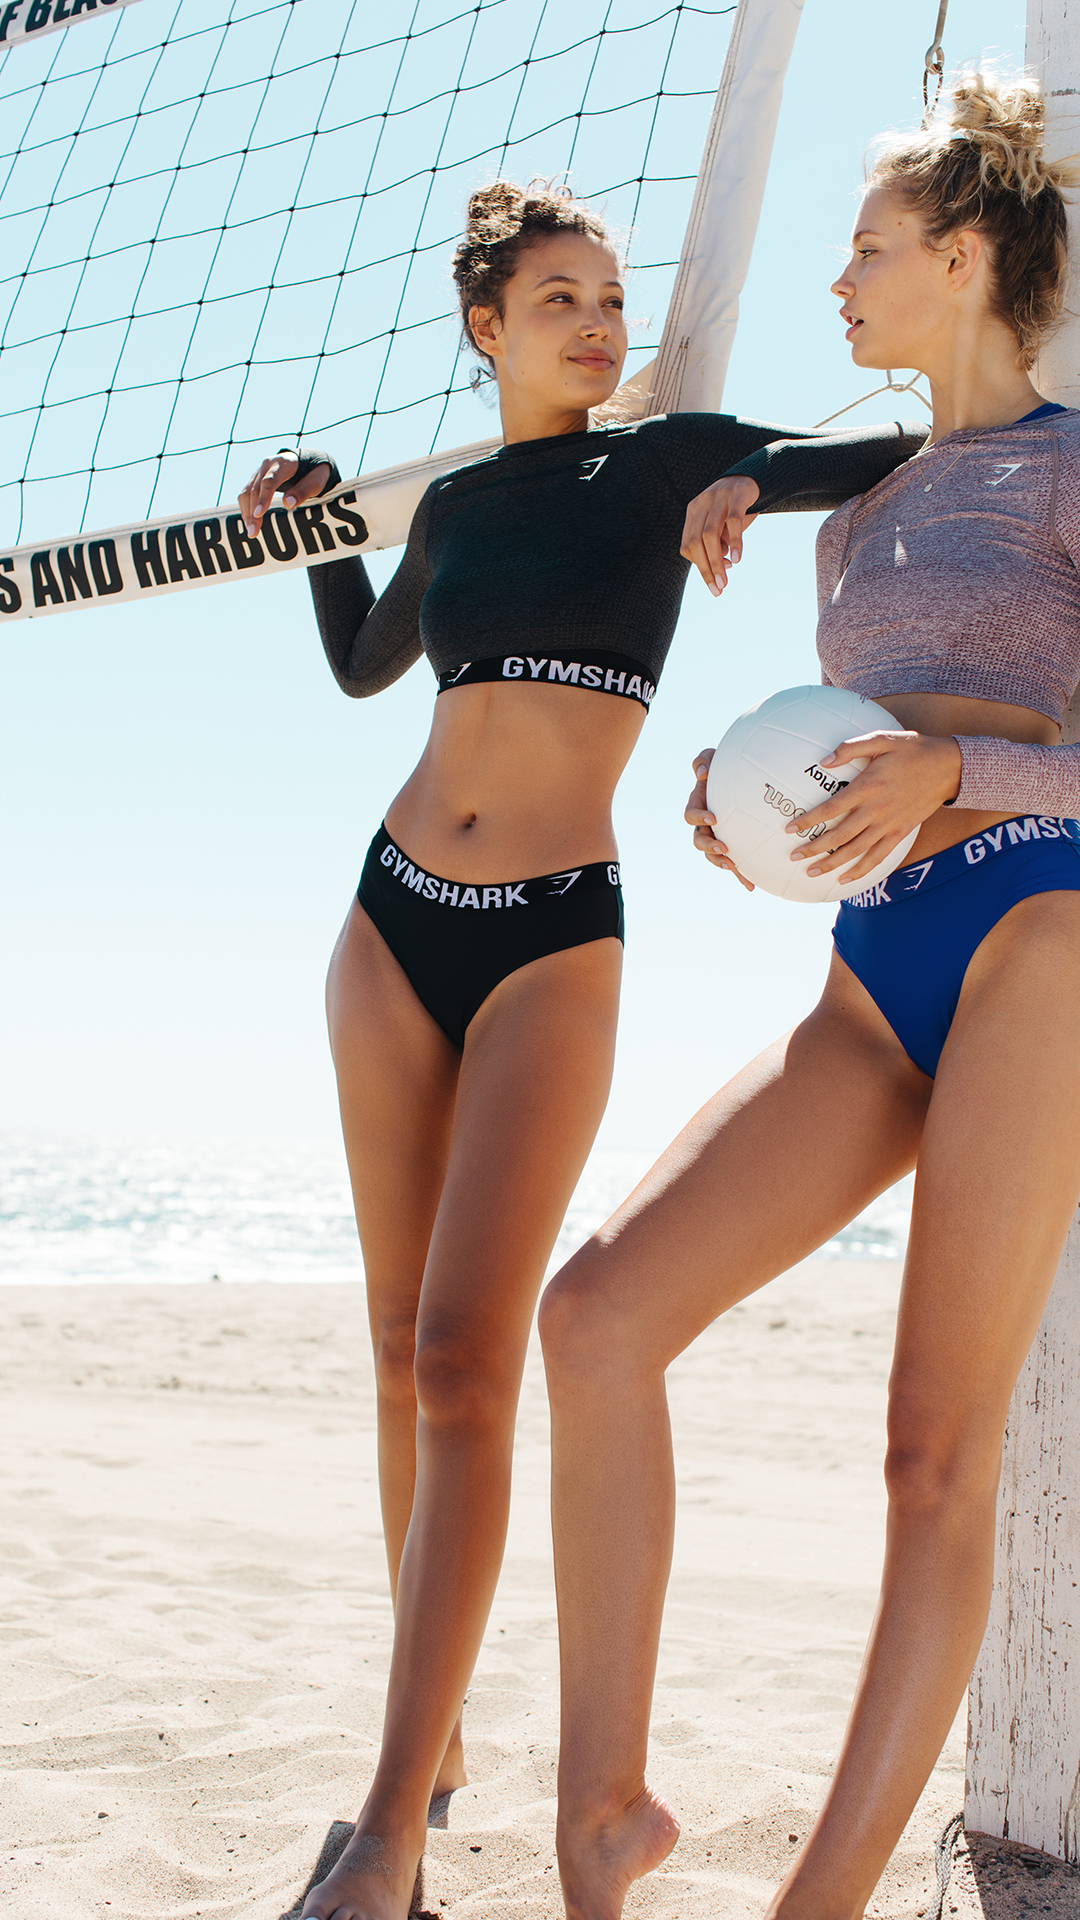 01b48db93c The Workout Bikini. Stay supported and stylish in your summer workouts.   Gymshark  Swimwear  Bikini  Summer  Workout